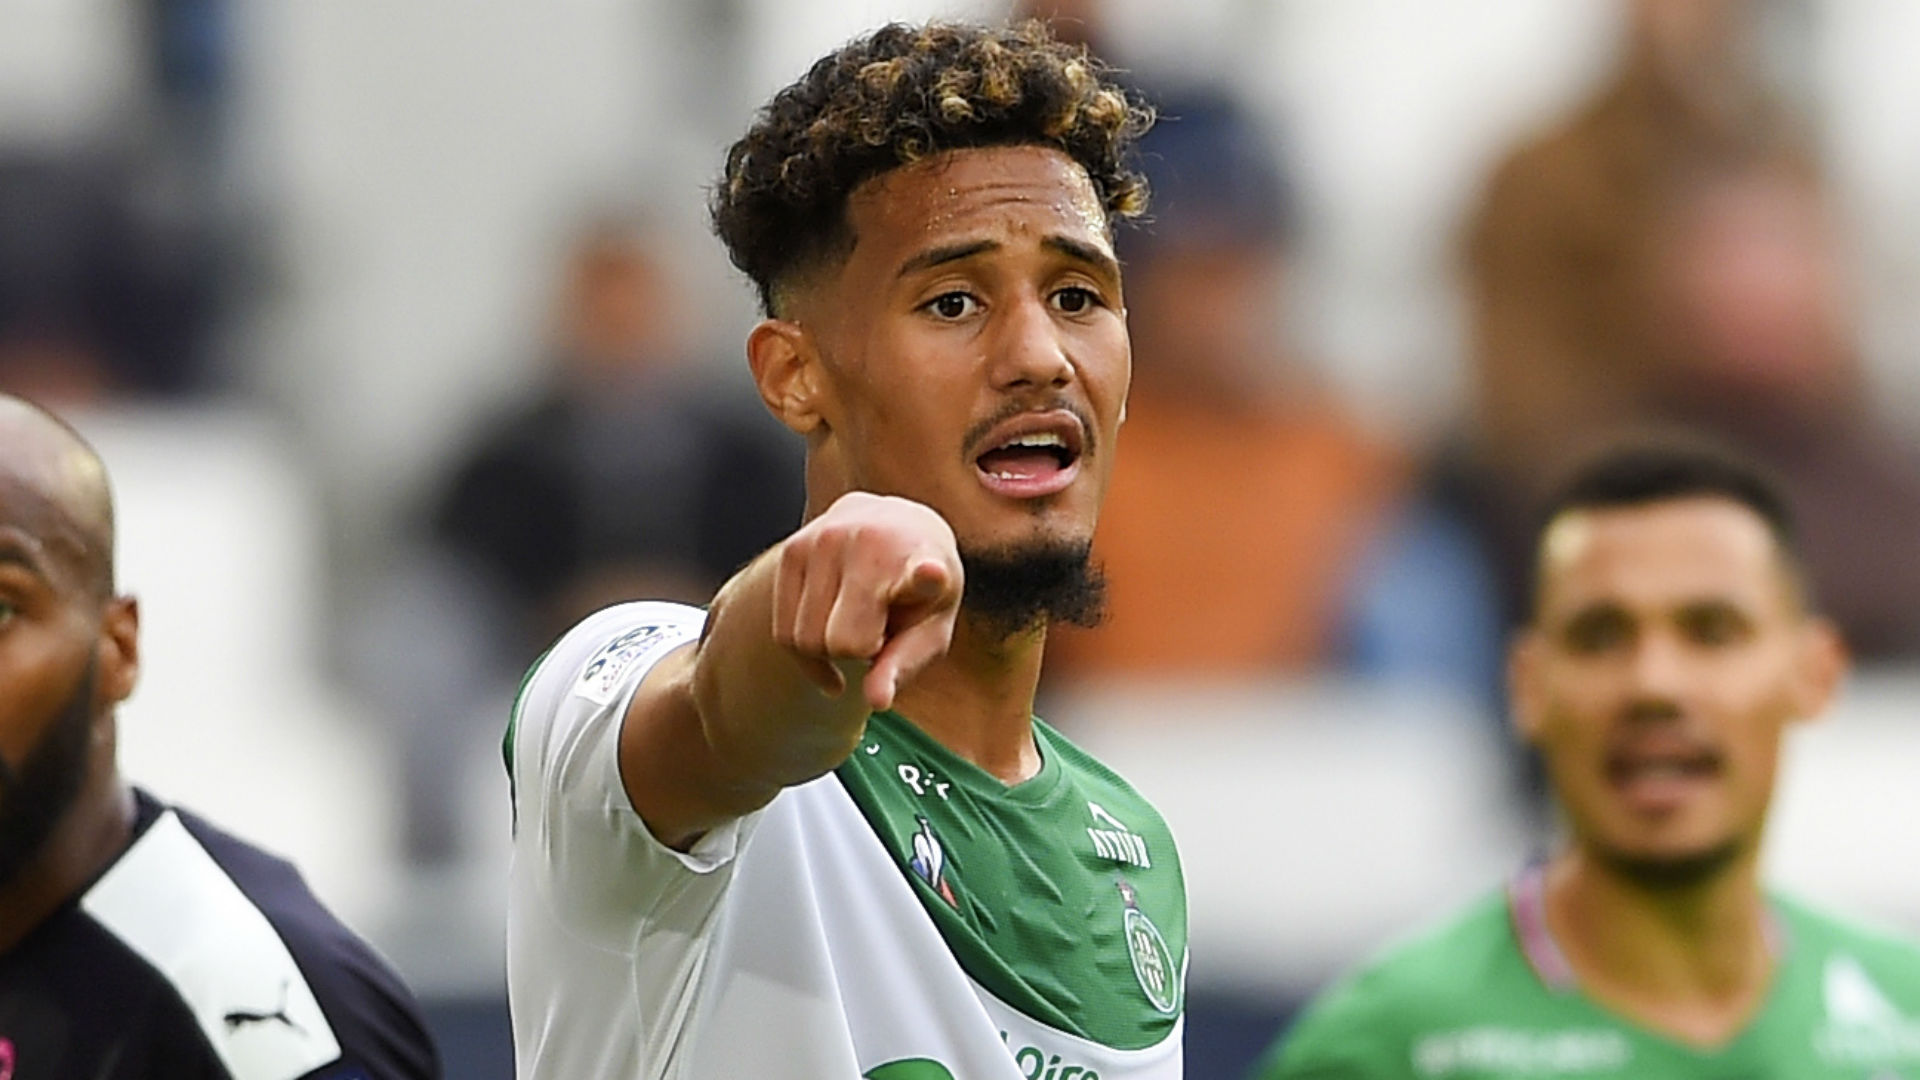 Puel wants Arsenal's Saliba to stay for Coupe de France final and confirms interest in PSG's Aouchiche